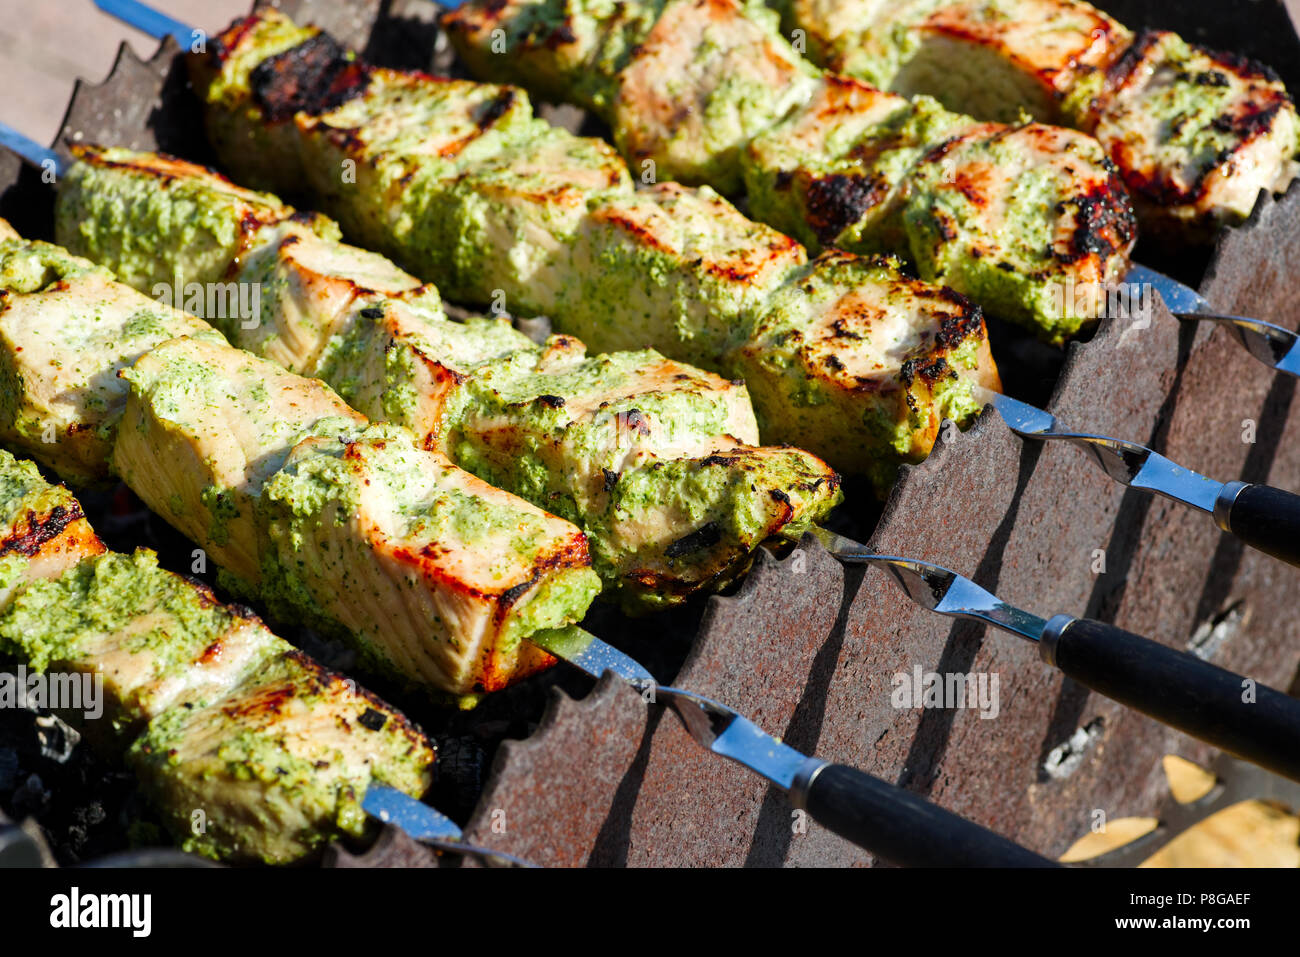 Skewers with pork meat under vegetable sauce - Stock Image